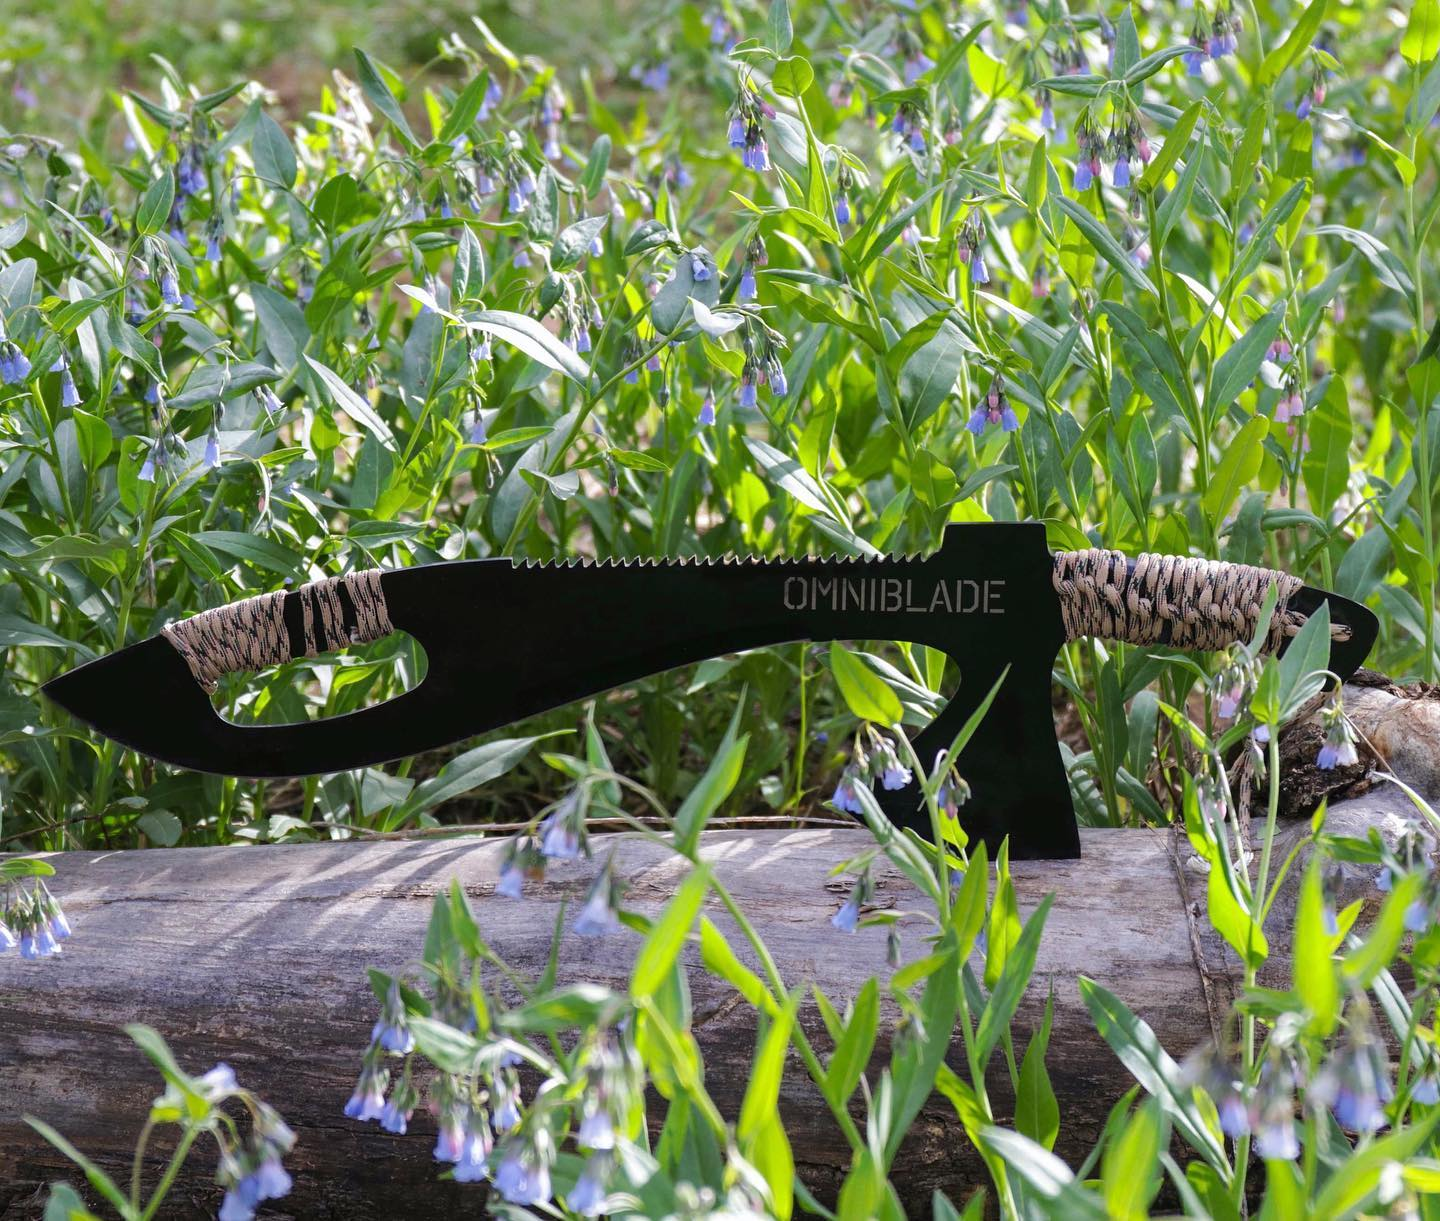 Omniblade 3-in-1 Survival Machete Includes a Knife, Tactical Tomahawk, and a Survival Saw - Giant machete multi-tool